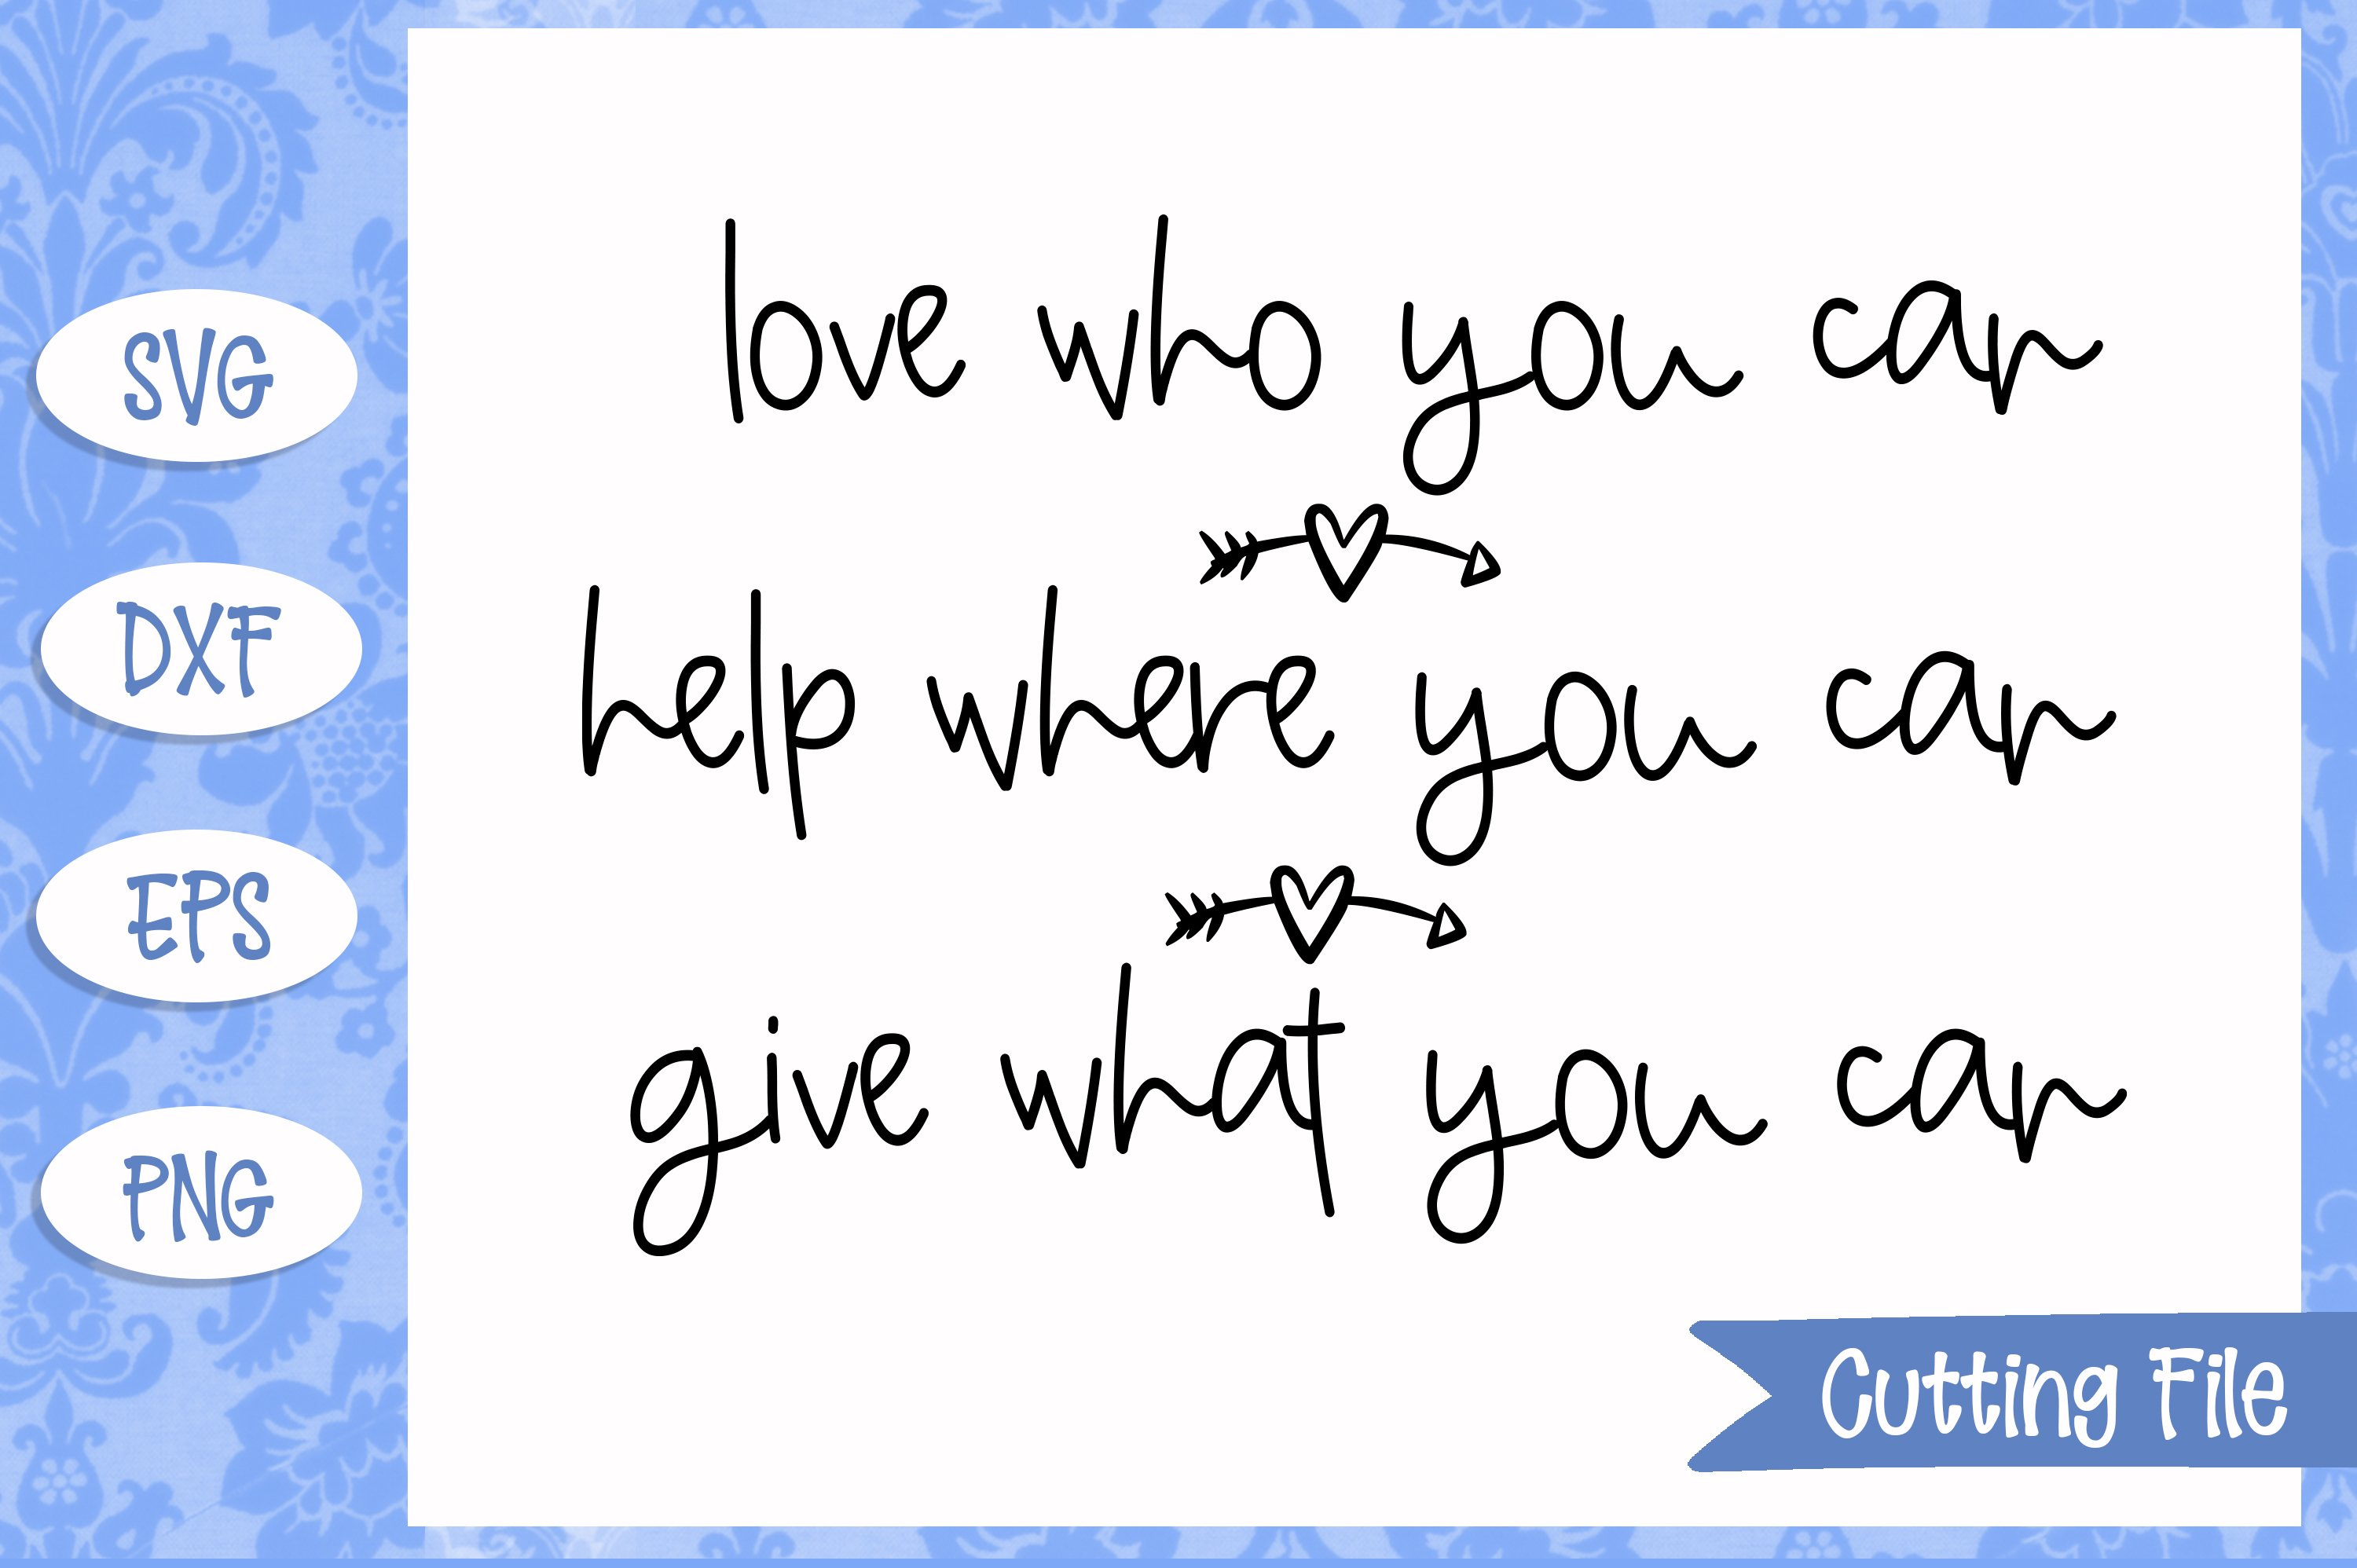 Love who you can SVG File example image 1